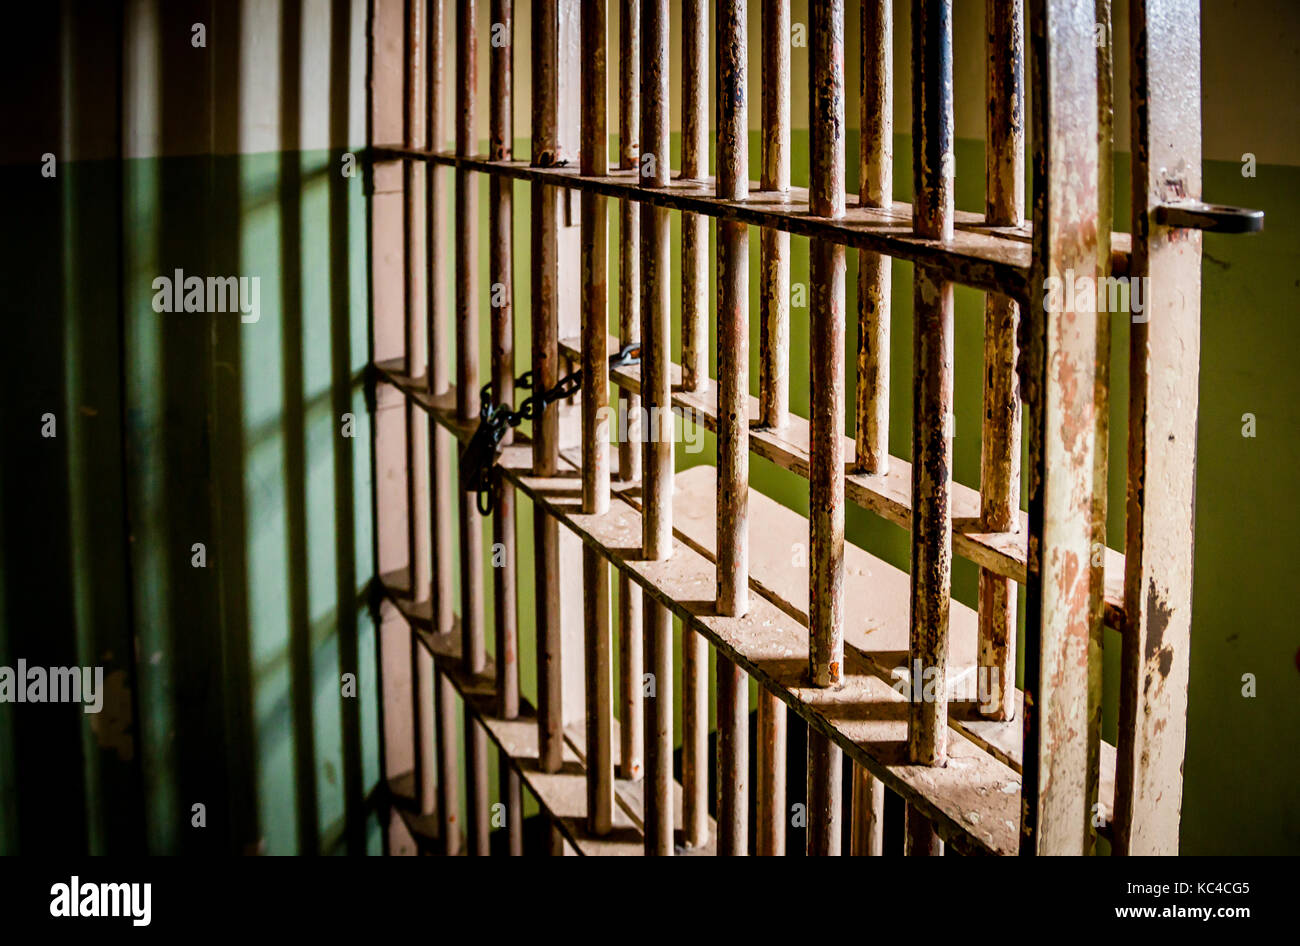 Crime and Law - Prison Cell Bars - Stock Image